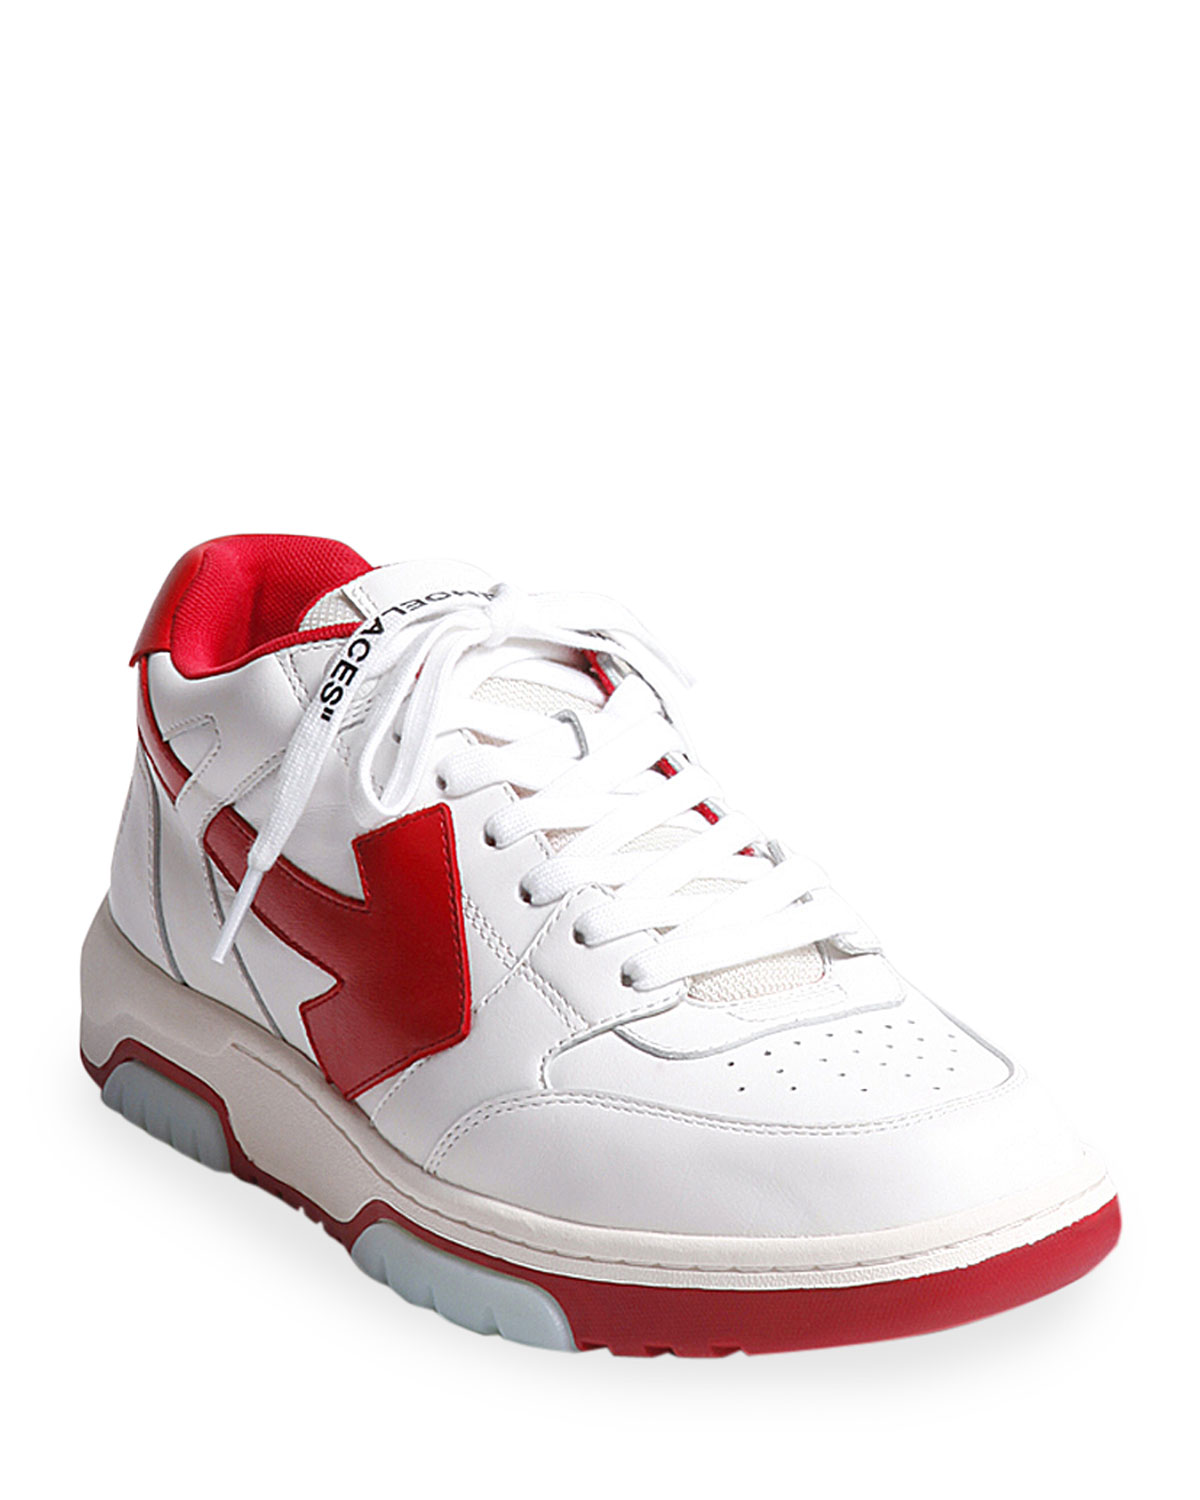 Off-White MEN'S VINTAGE CLASSIC LOW-TOP SNEAKERS